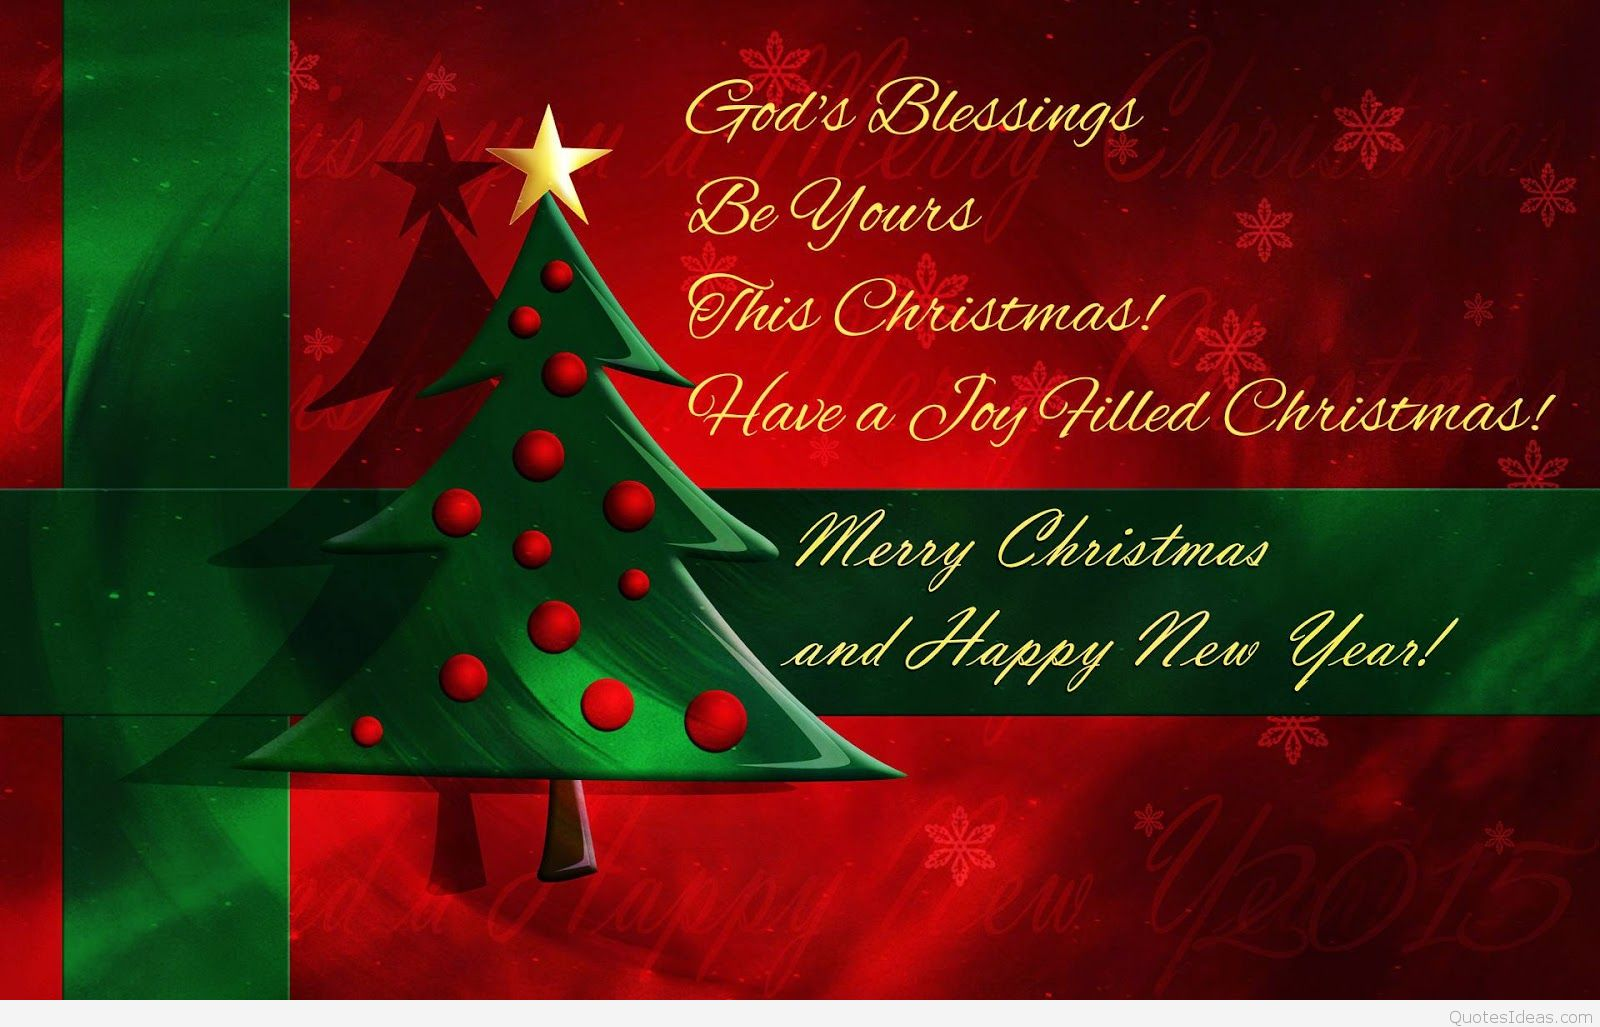 Merry Christmas Quotes For Cards Ltcl2mhh2 Terntank